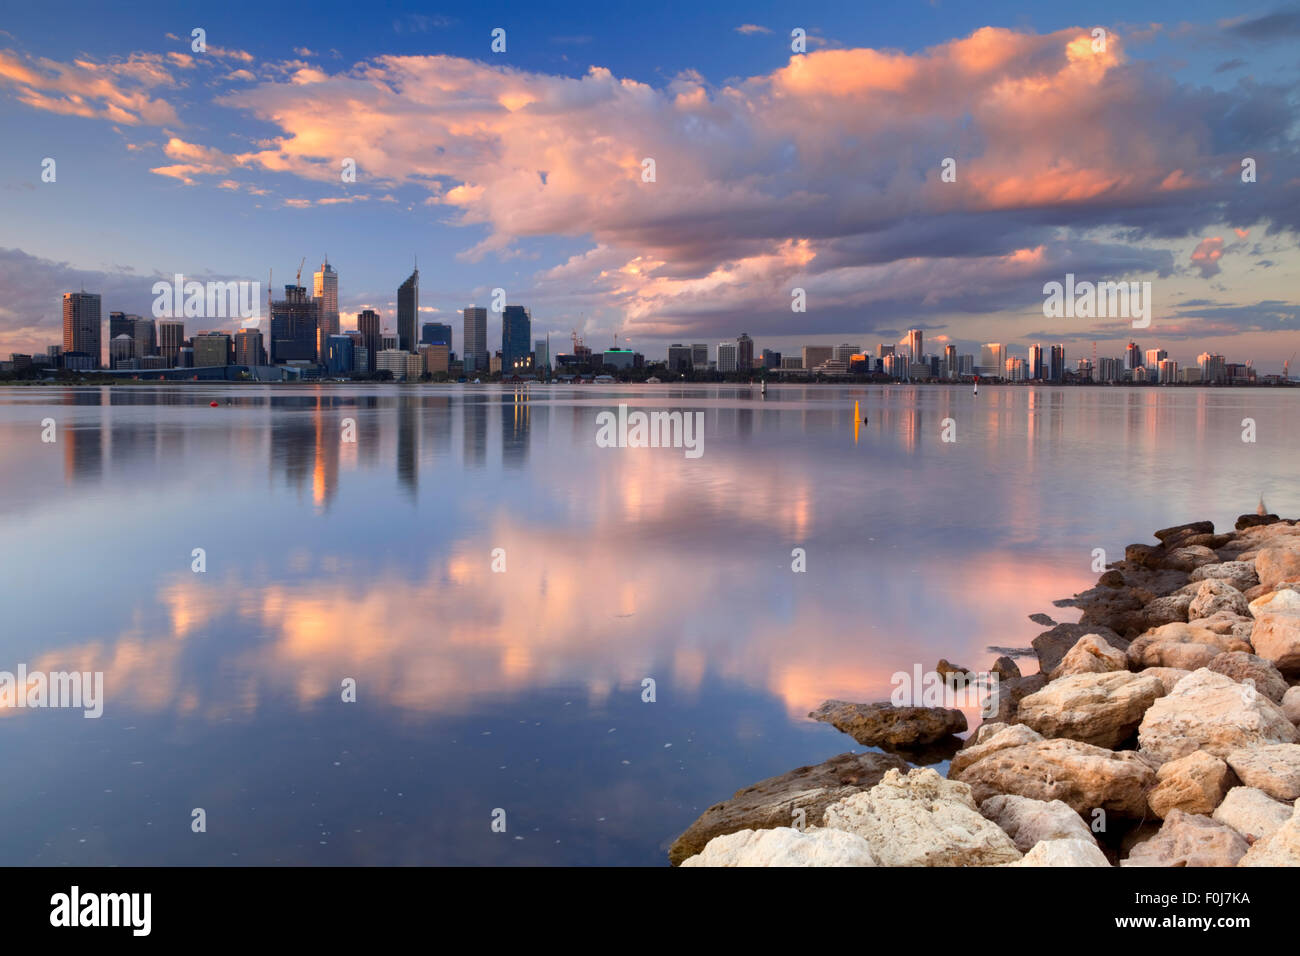 The skyline of Perth, Western Australia at sunset. Photographed from across the Swan River. - Stock Image